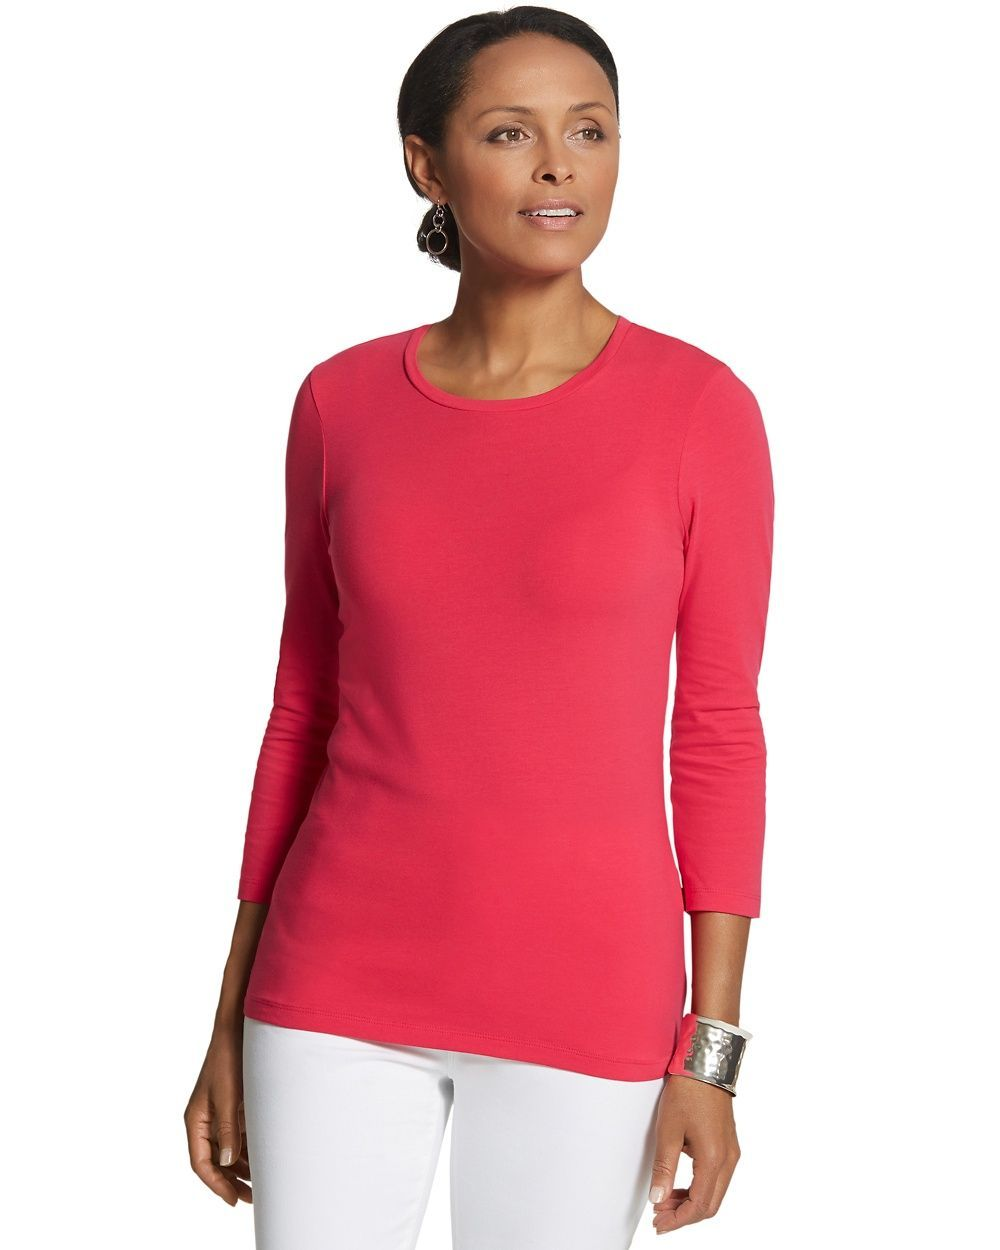 Chico's Women's Collette 3/4-Sleeve Tee,